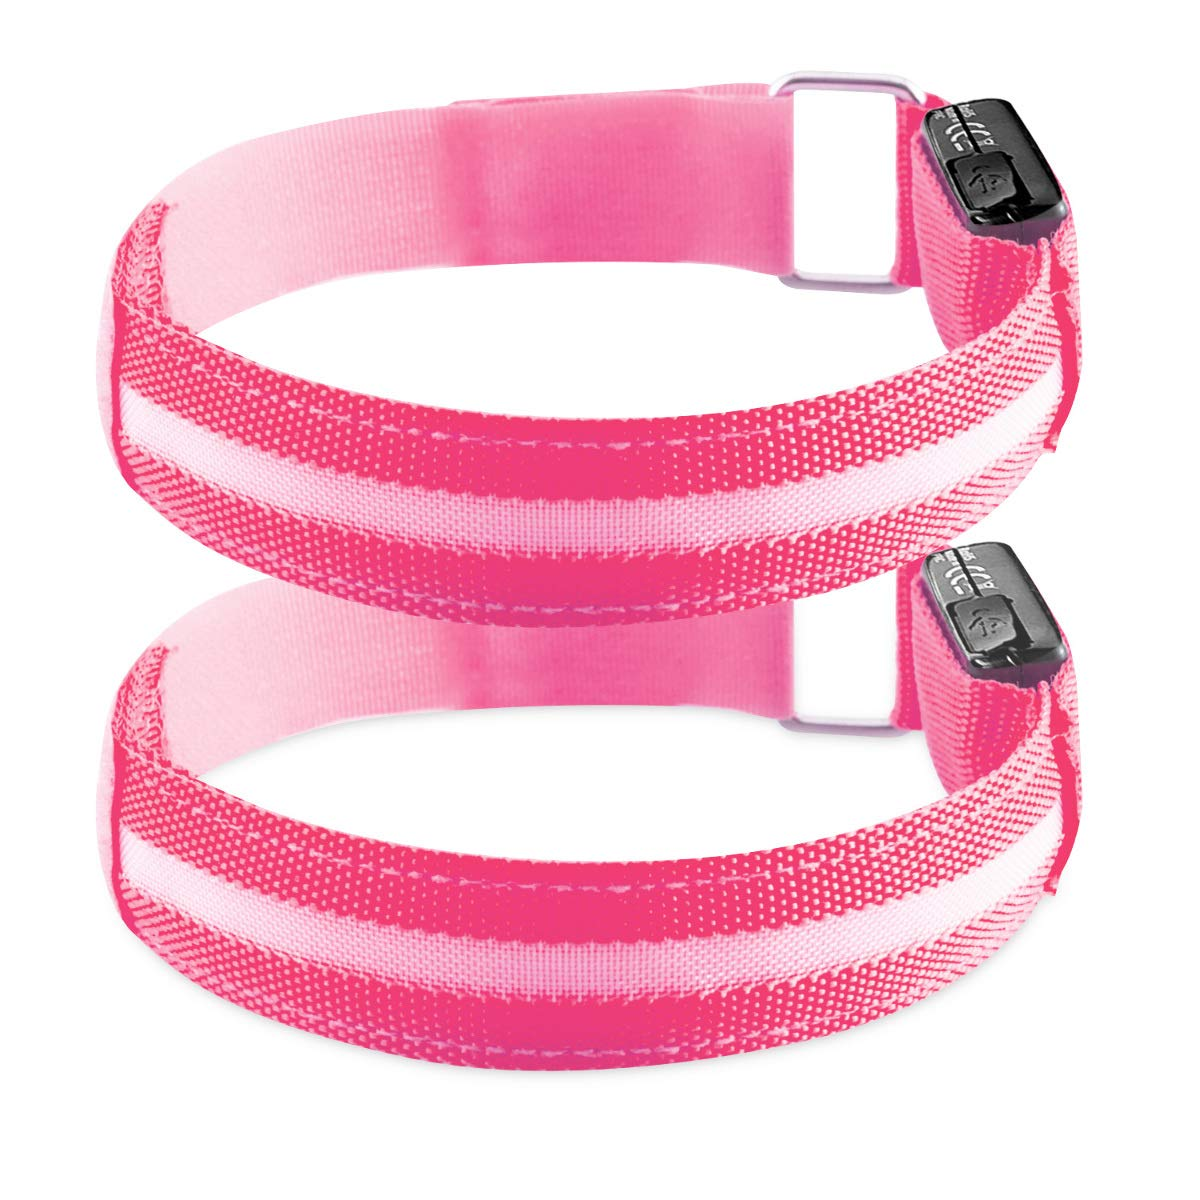 Kwmobile 2X LED Safety Bands pink